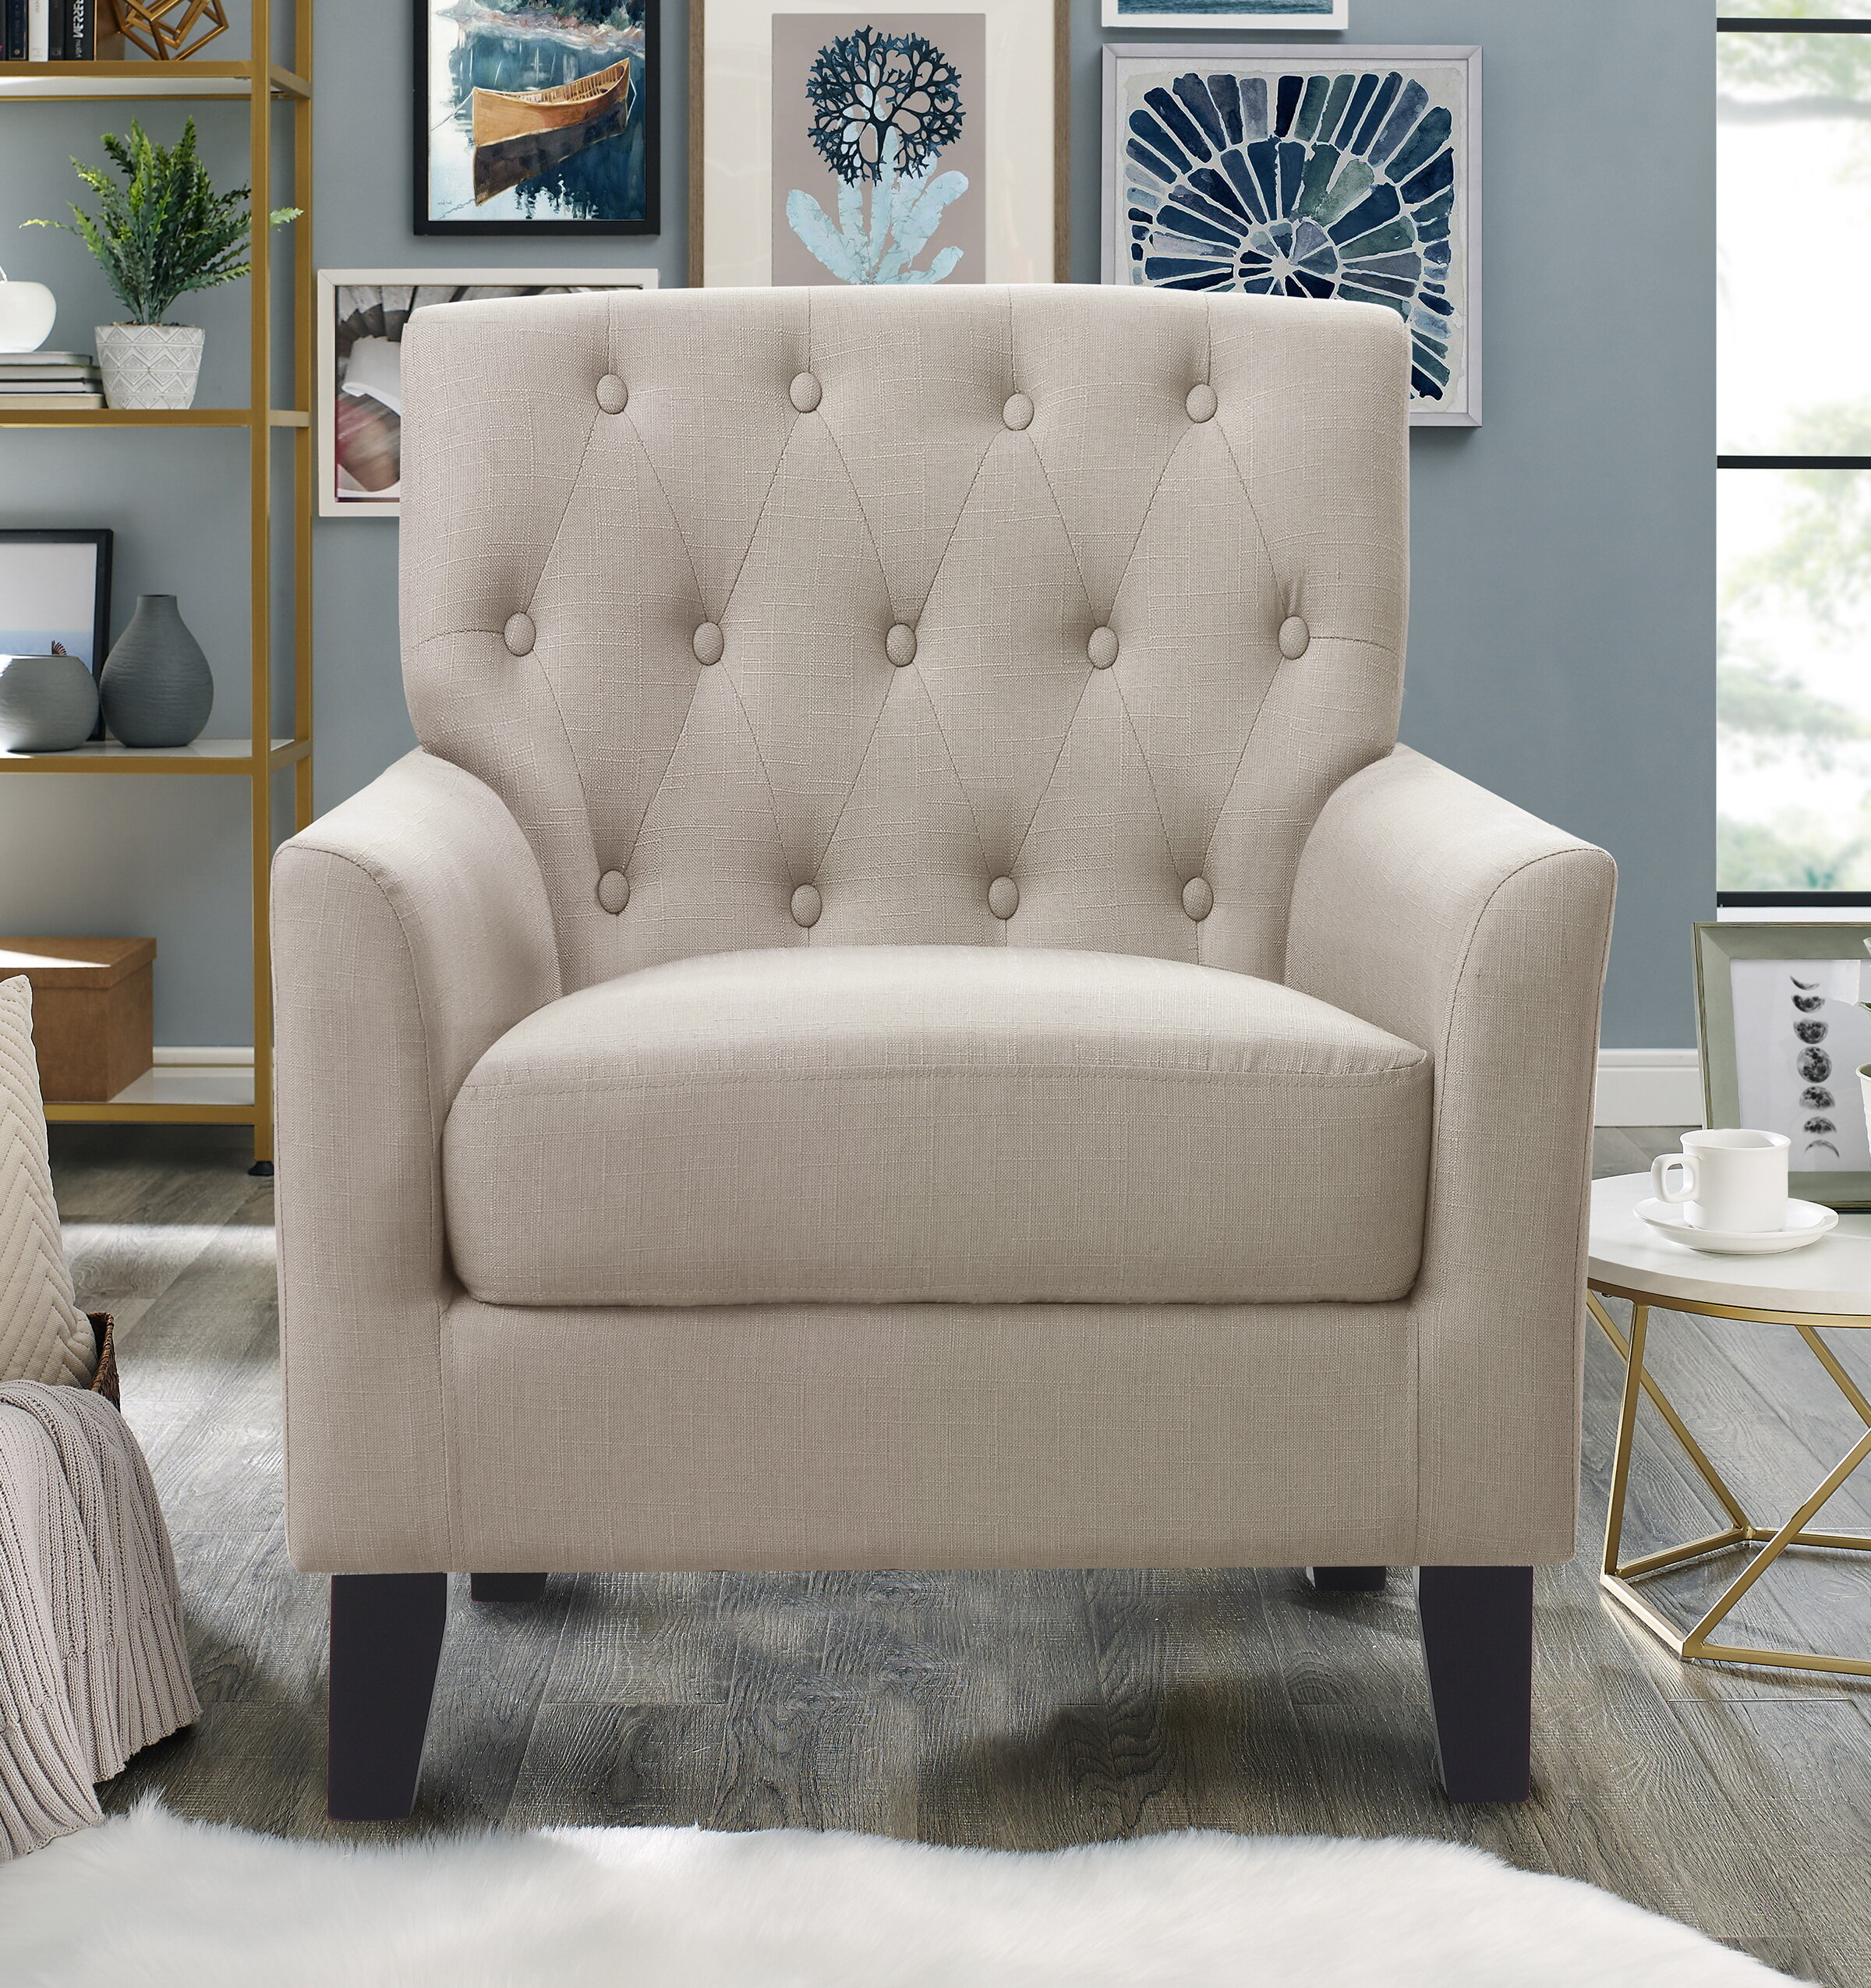 Wayfair Armchairs You Ll Love In 2021